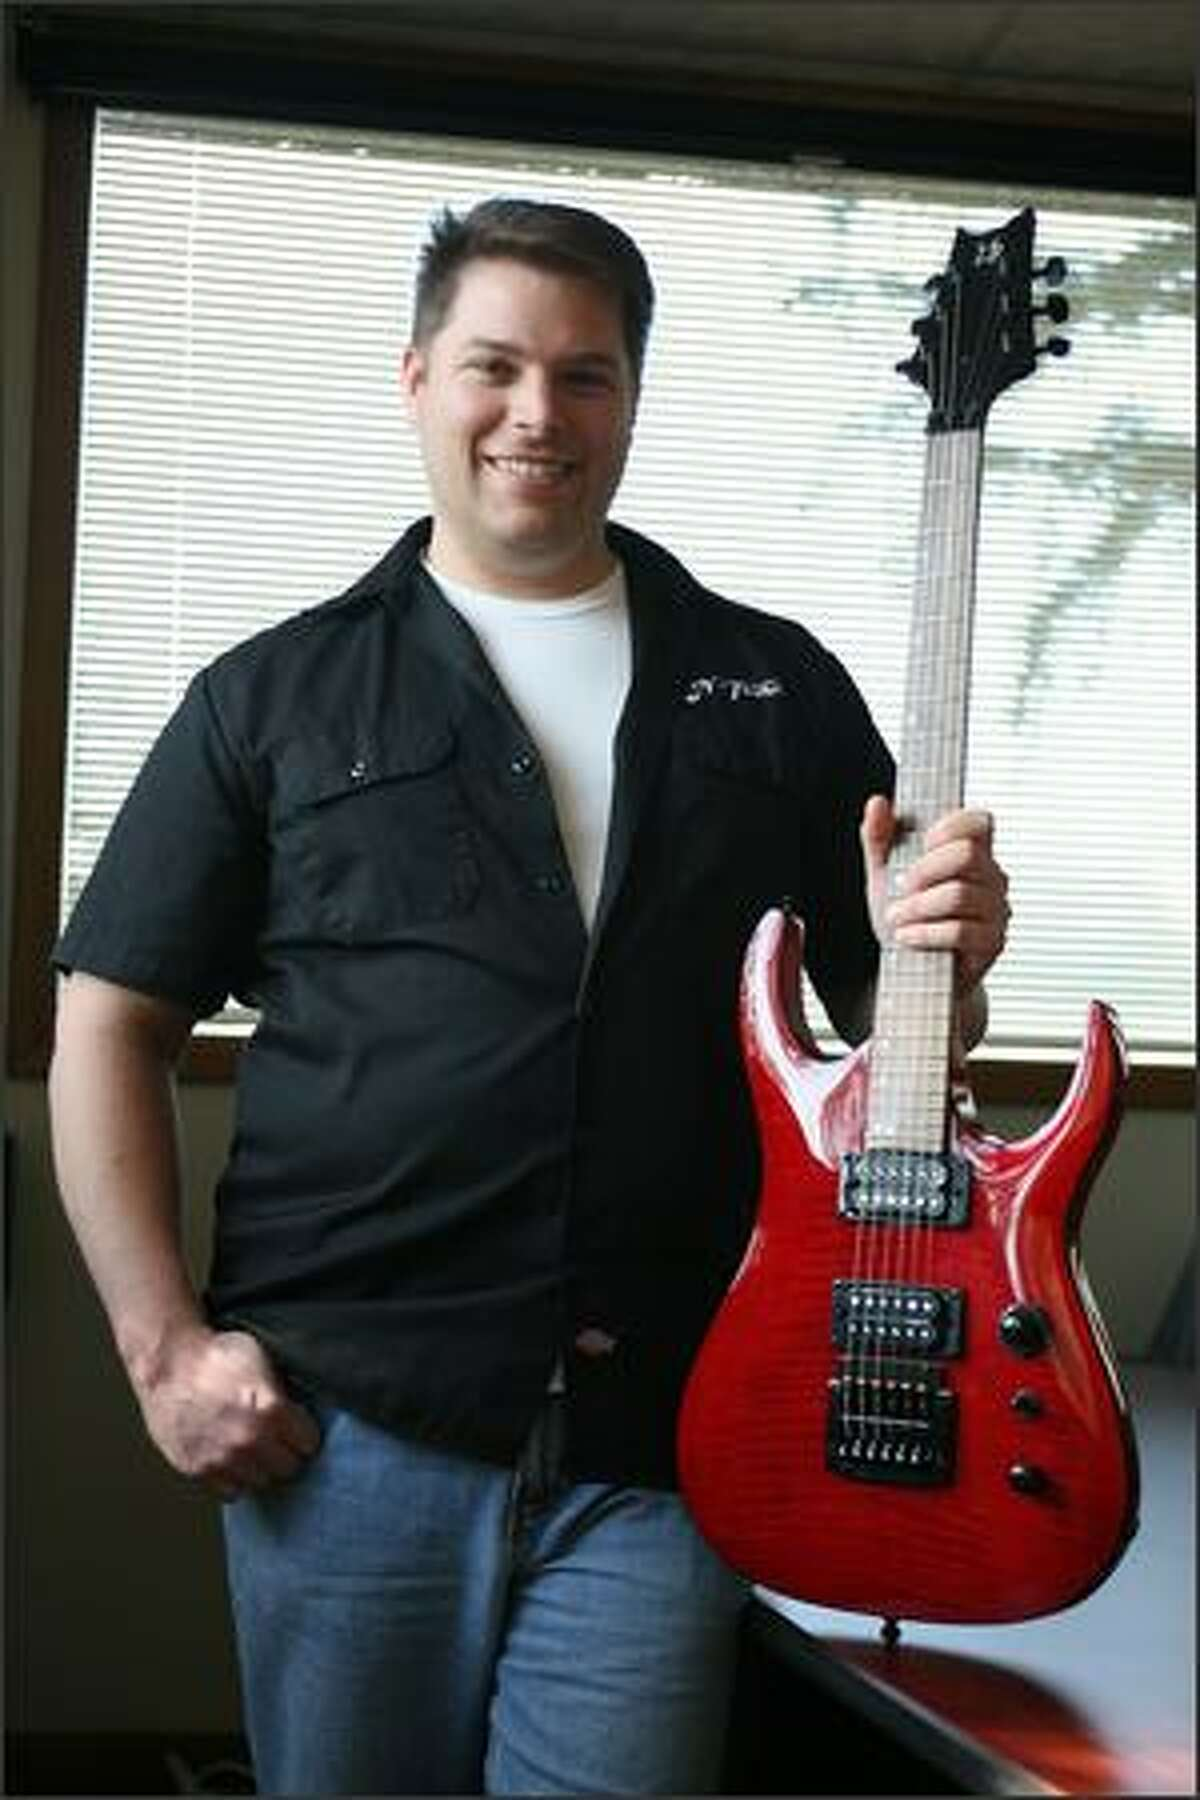 Sam Sudore is president and CEO of Zero Crossing Inc., which makes a tuner that mounts on a guitar.